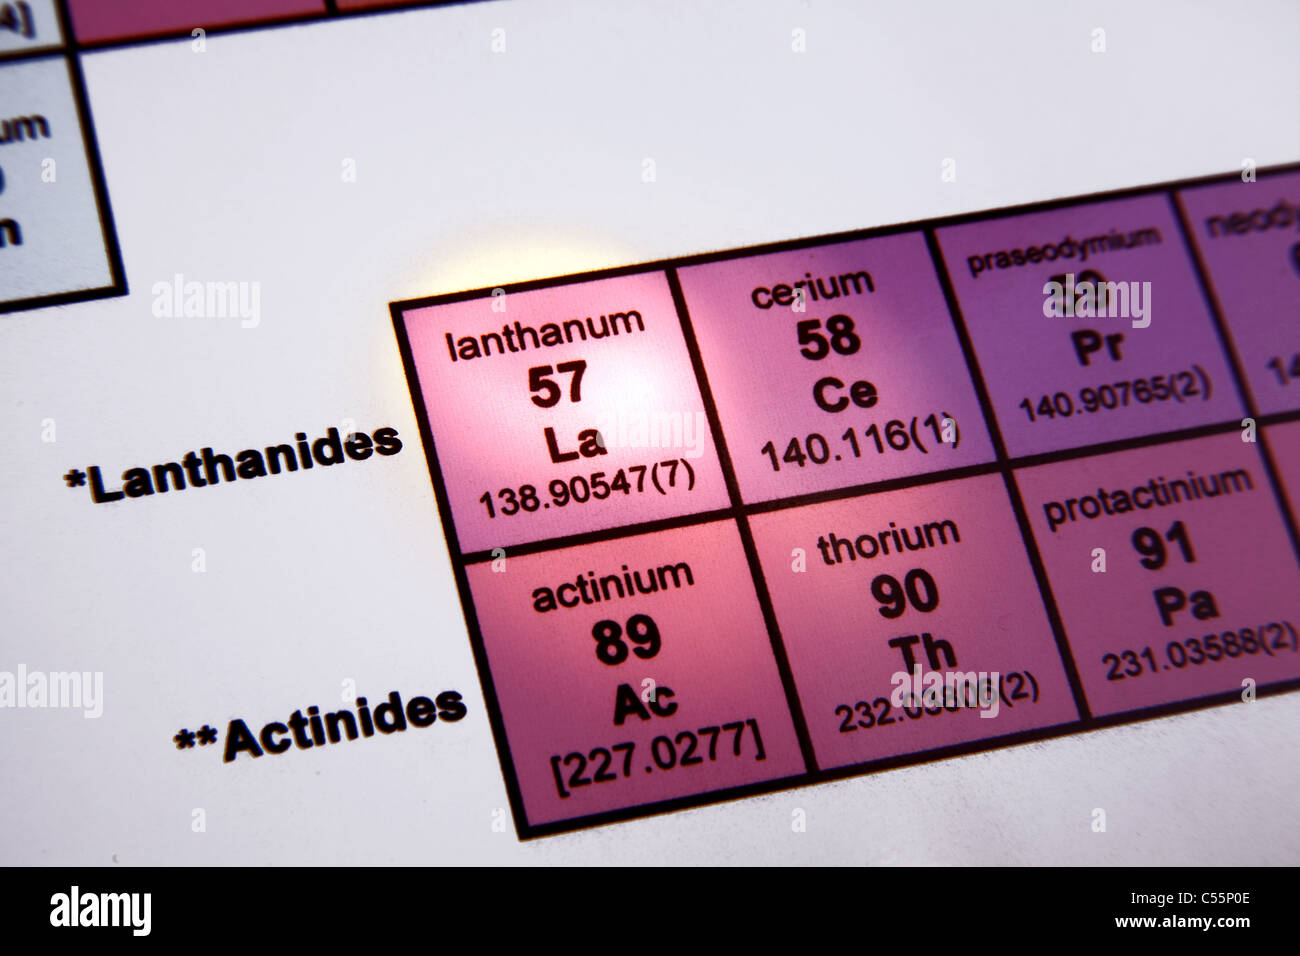 Lanthanum La Chemical Element Periodic Stock Photos Lanthanum La